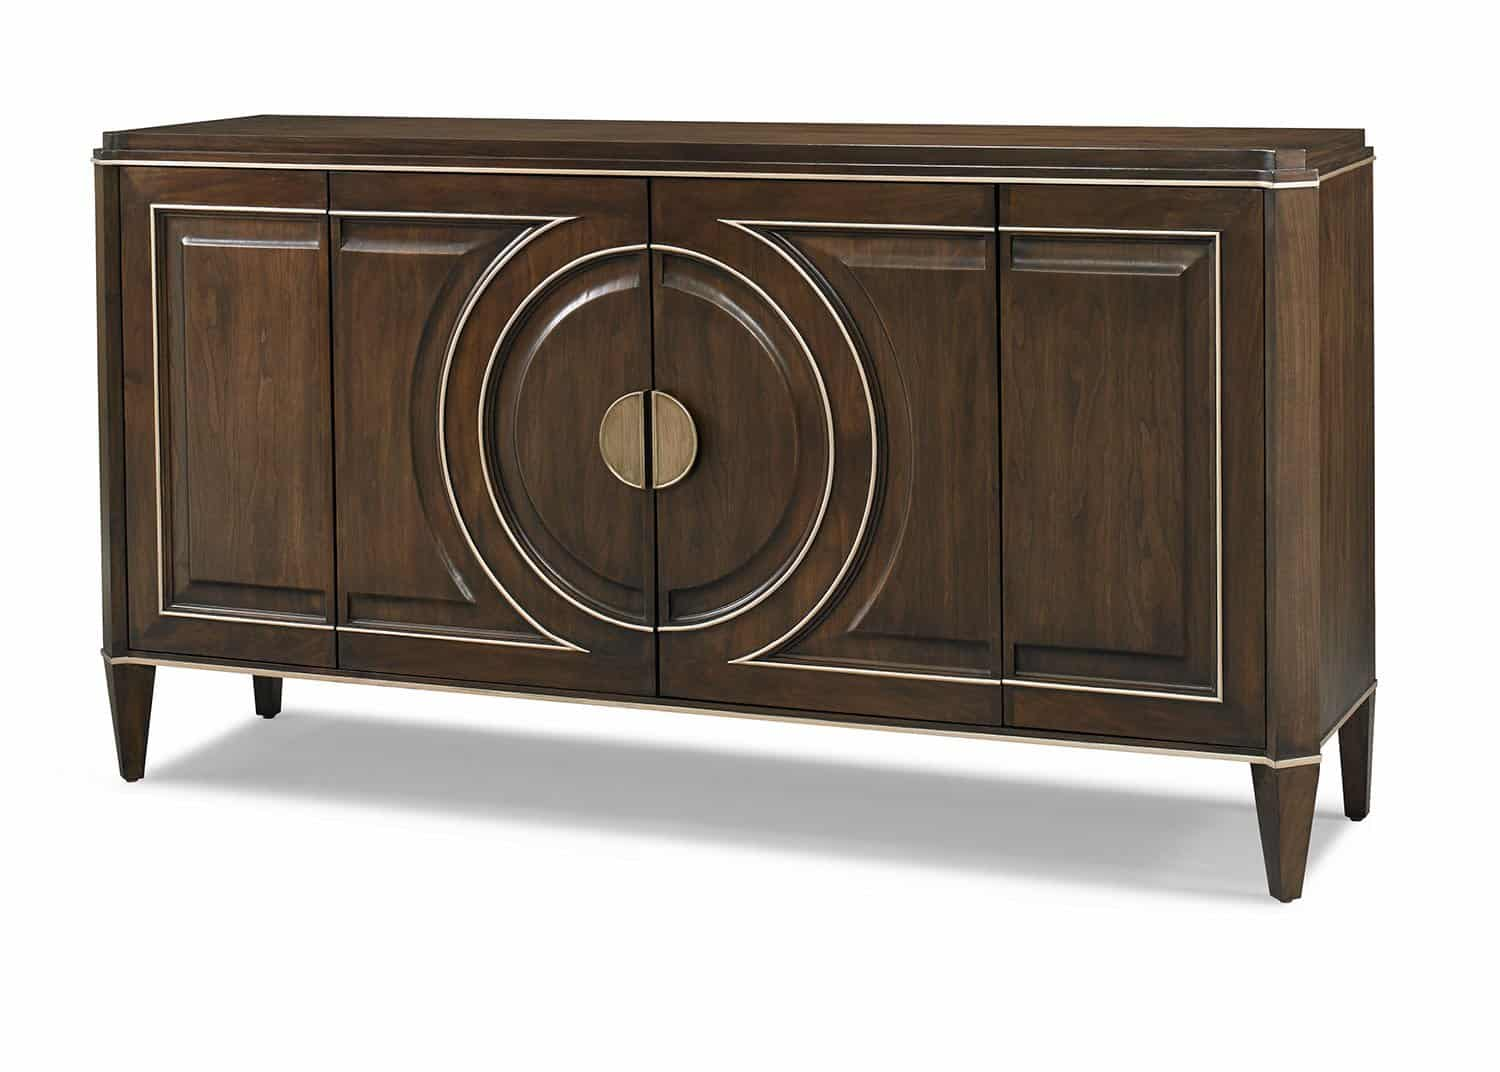 Mobilart decor high end furniture for Buffet meuble montreal